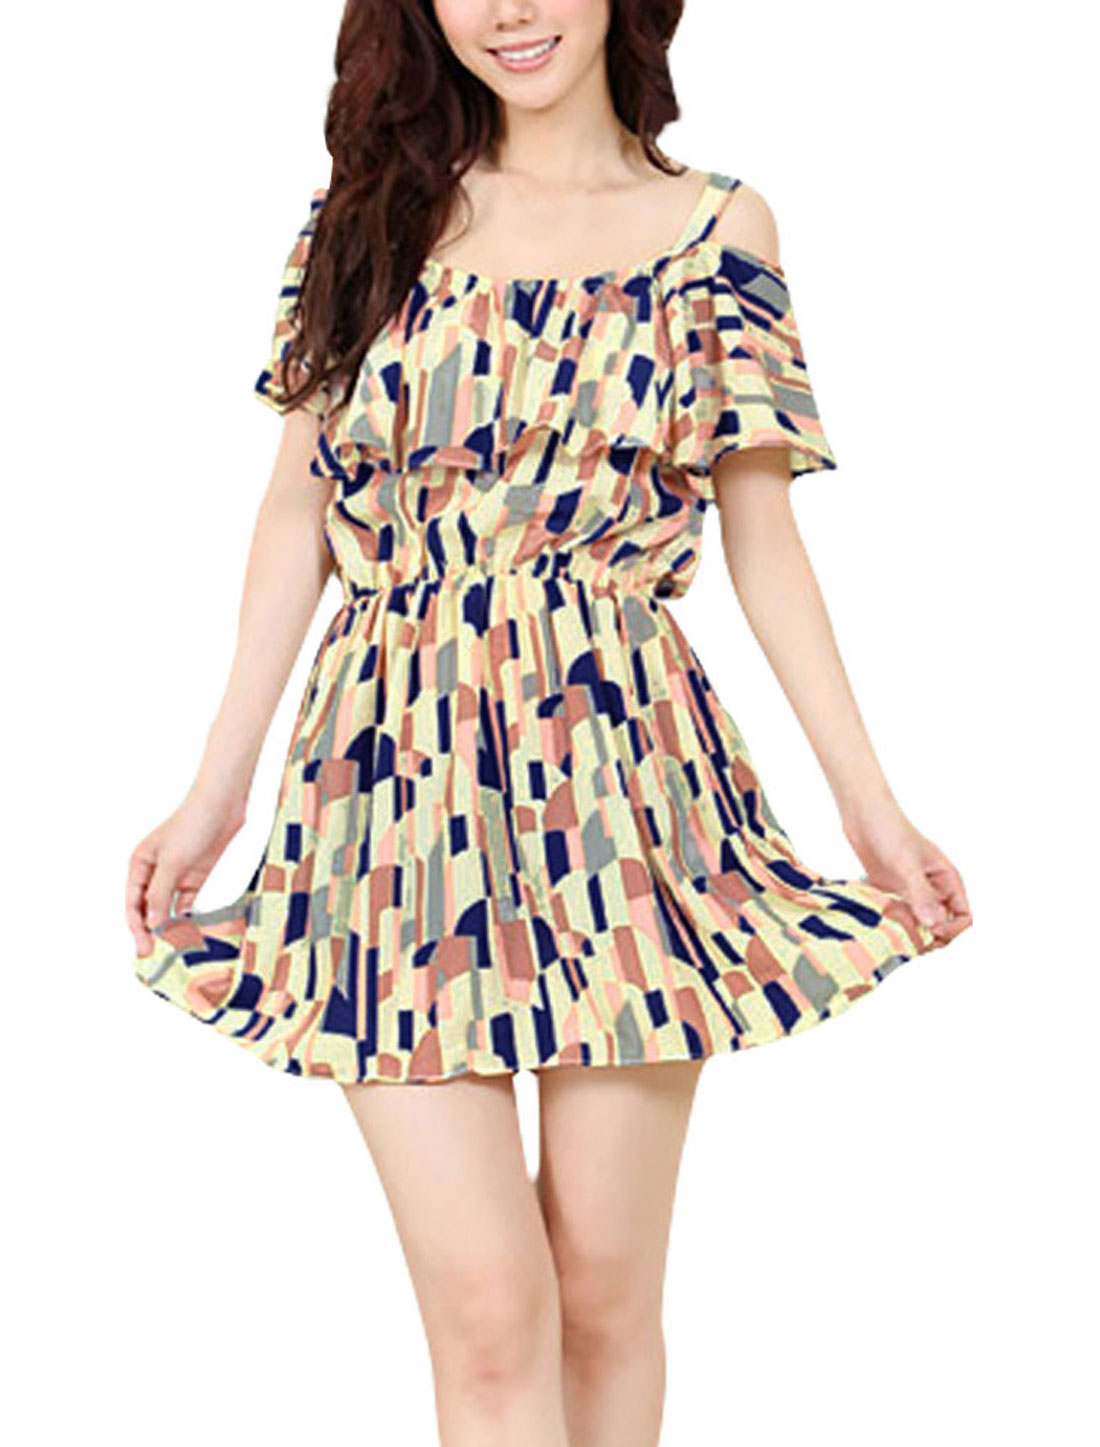 Sexy Ladies Casual Spaghetti Straps Flouncing Stretchy Geometric Prints Multi-color Dress XS